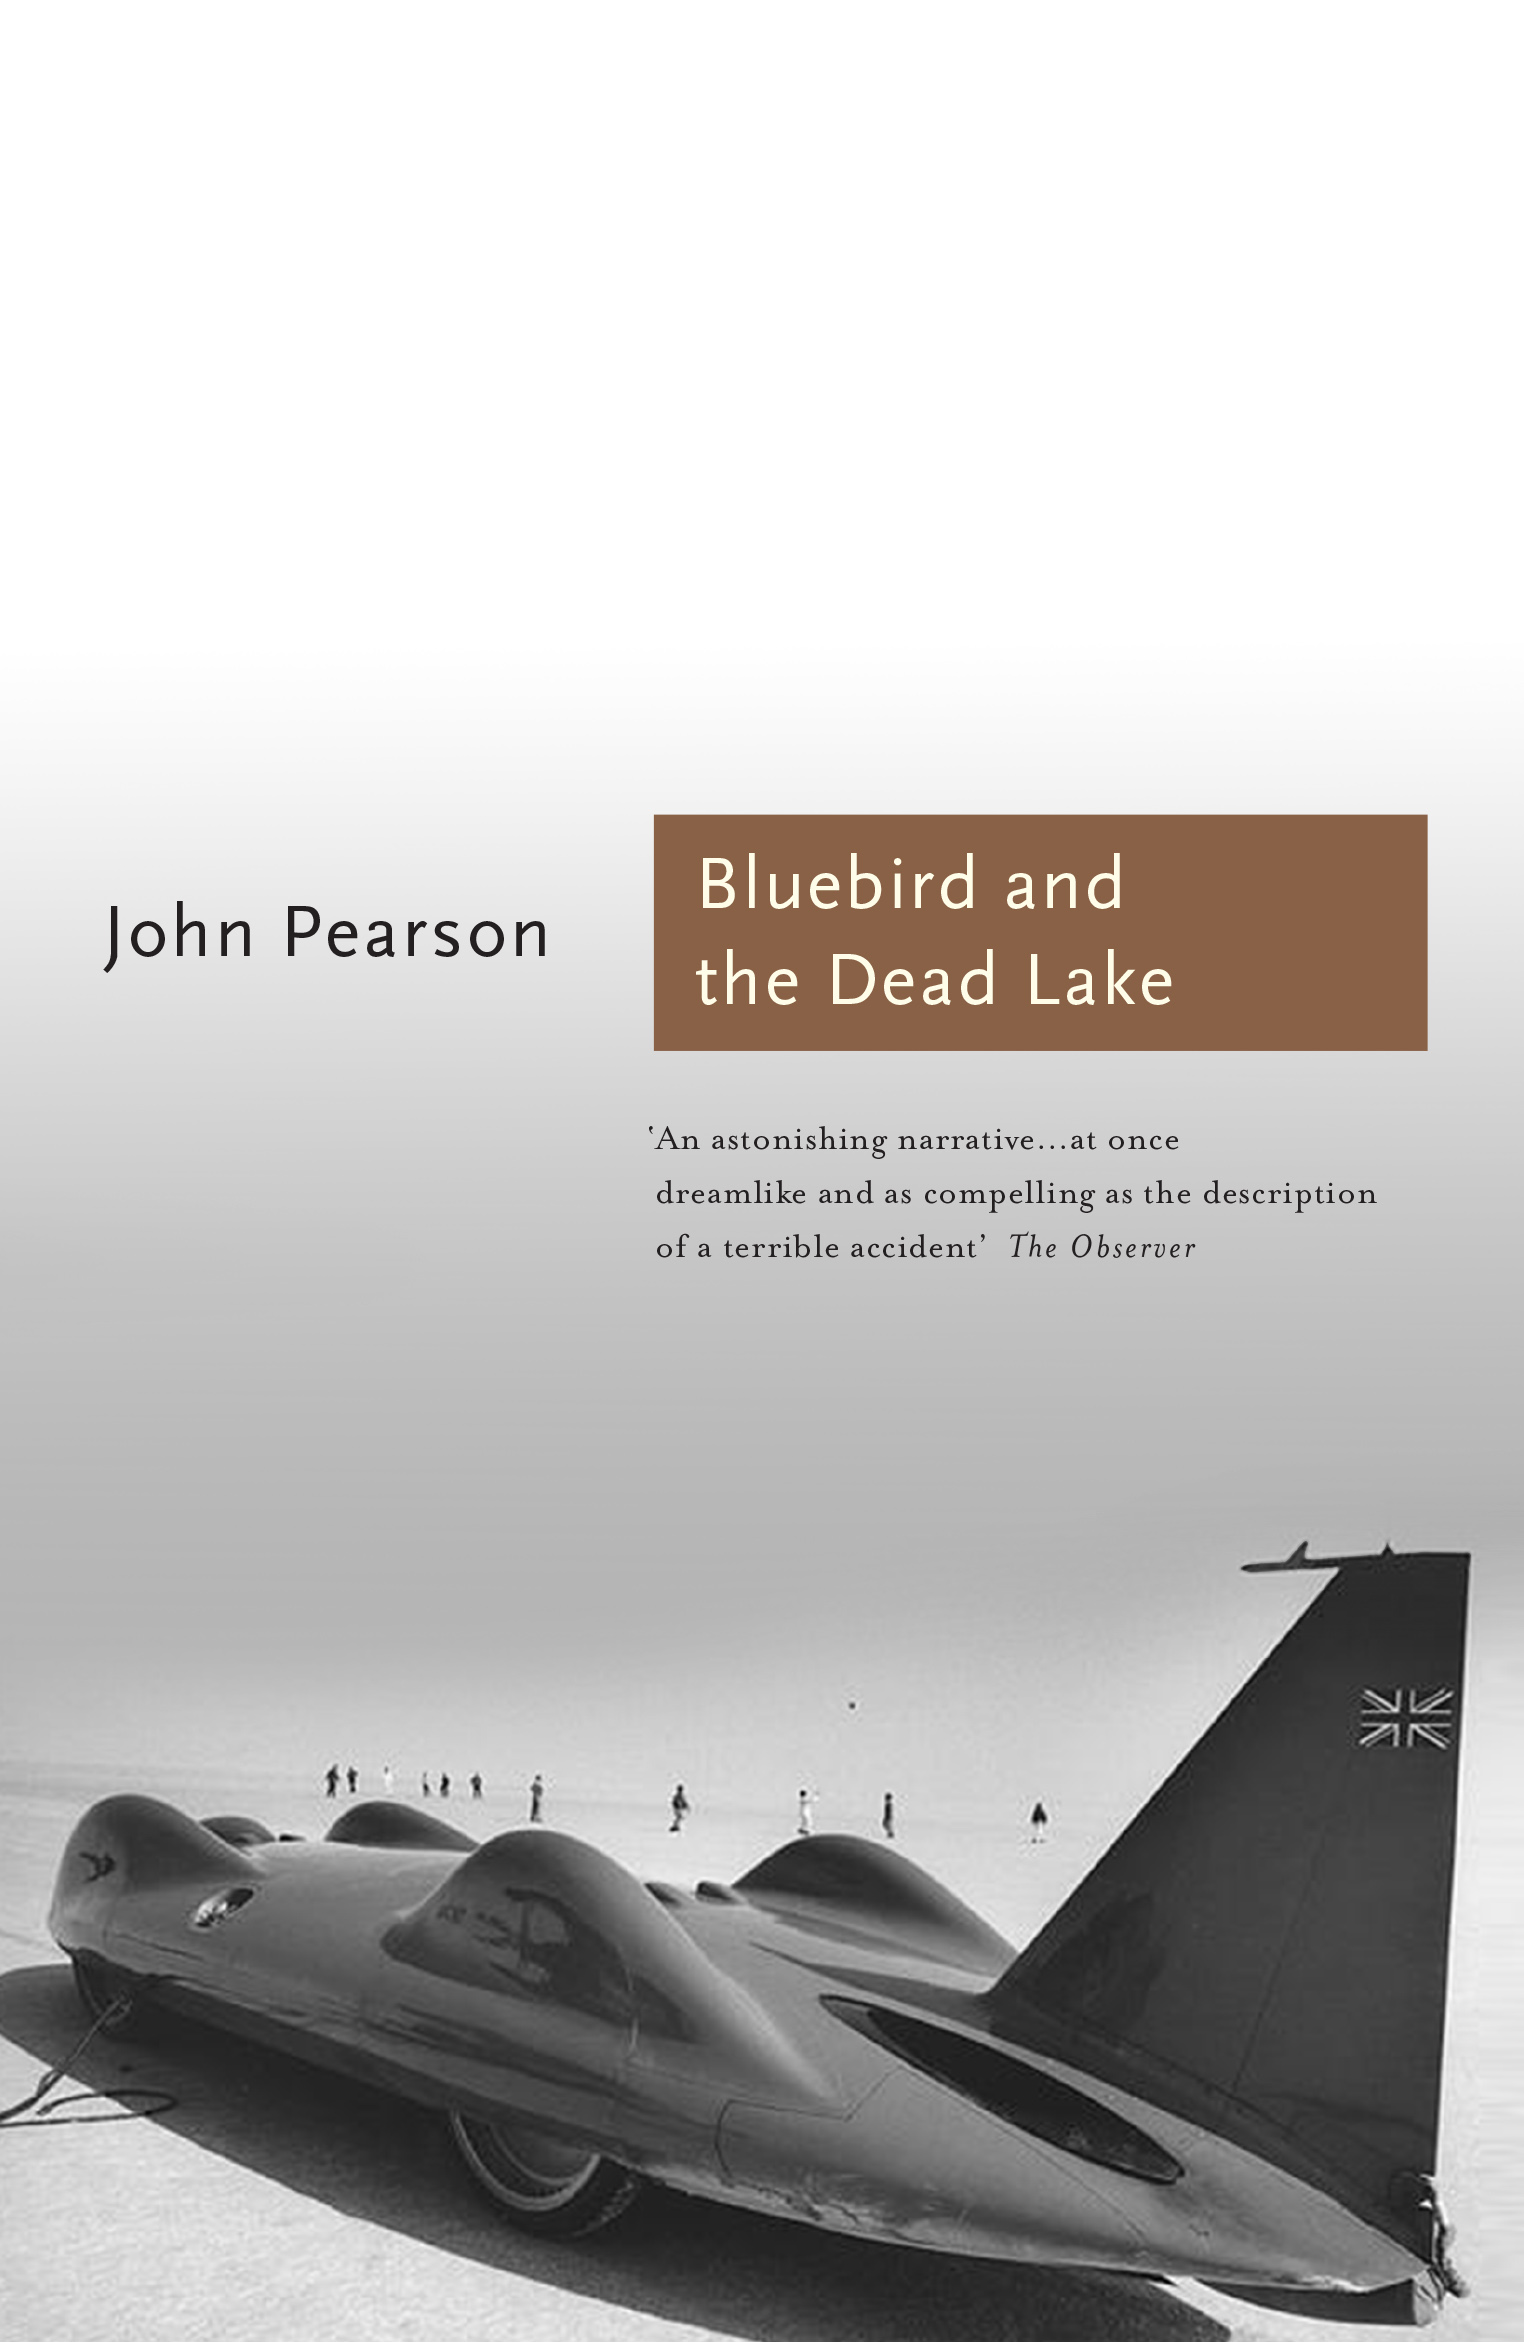 The Bluebird And The Dead Lake By John Pearson And Richard